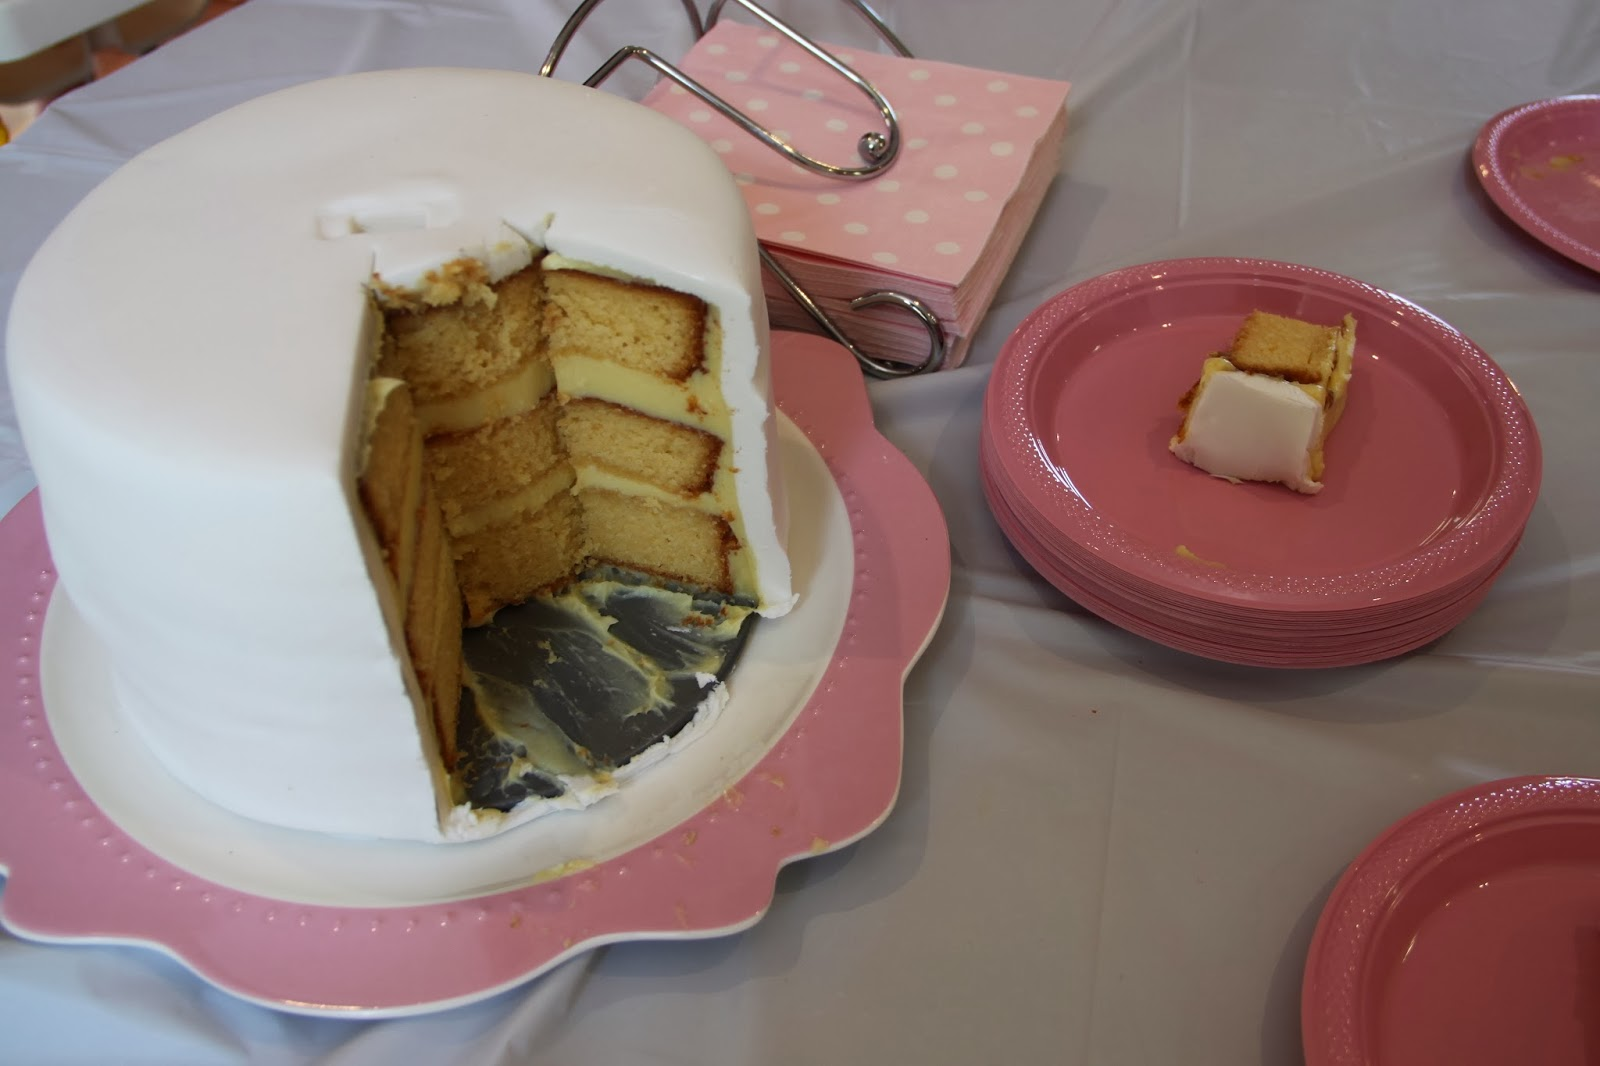 I Had Yummy Cake This Morning In My Castle